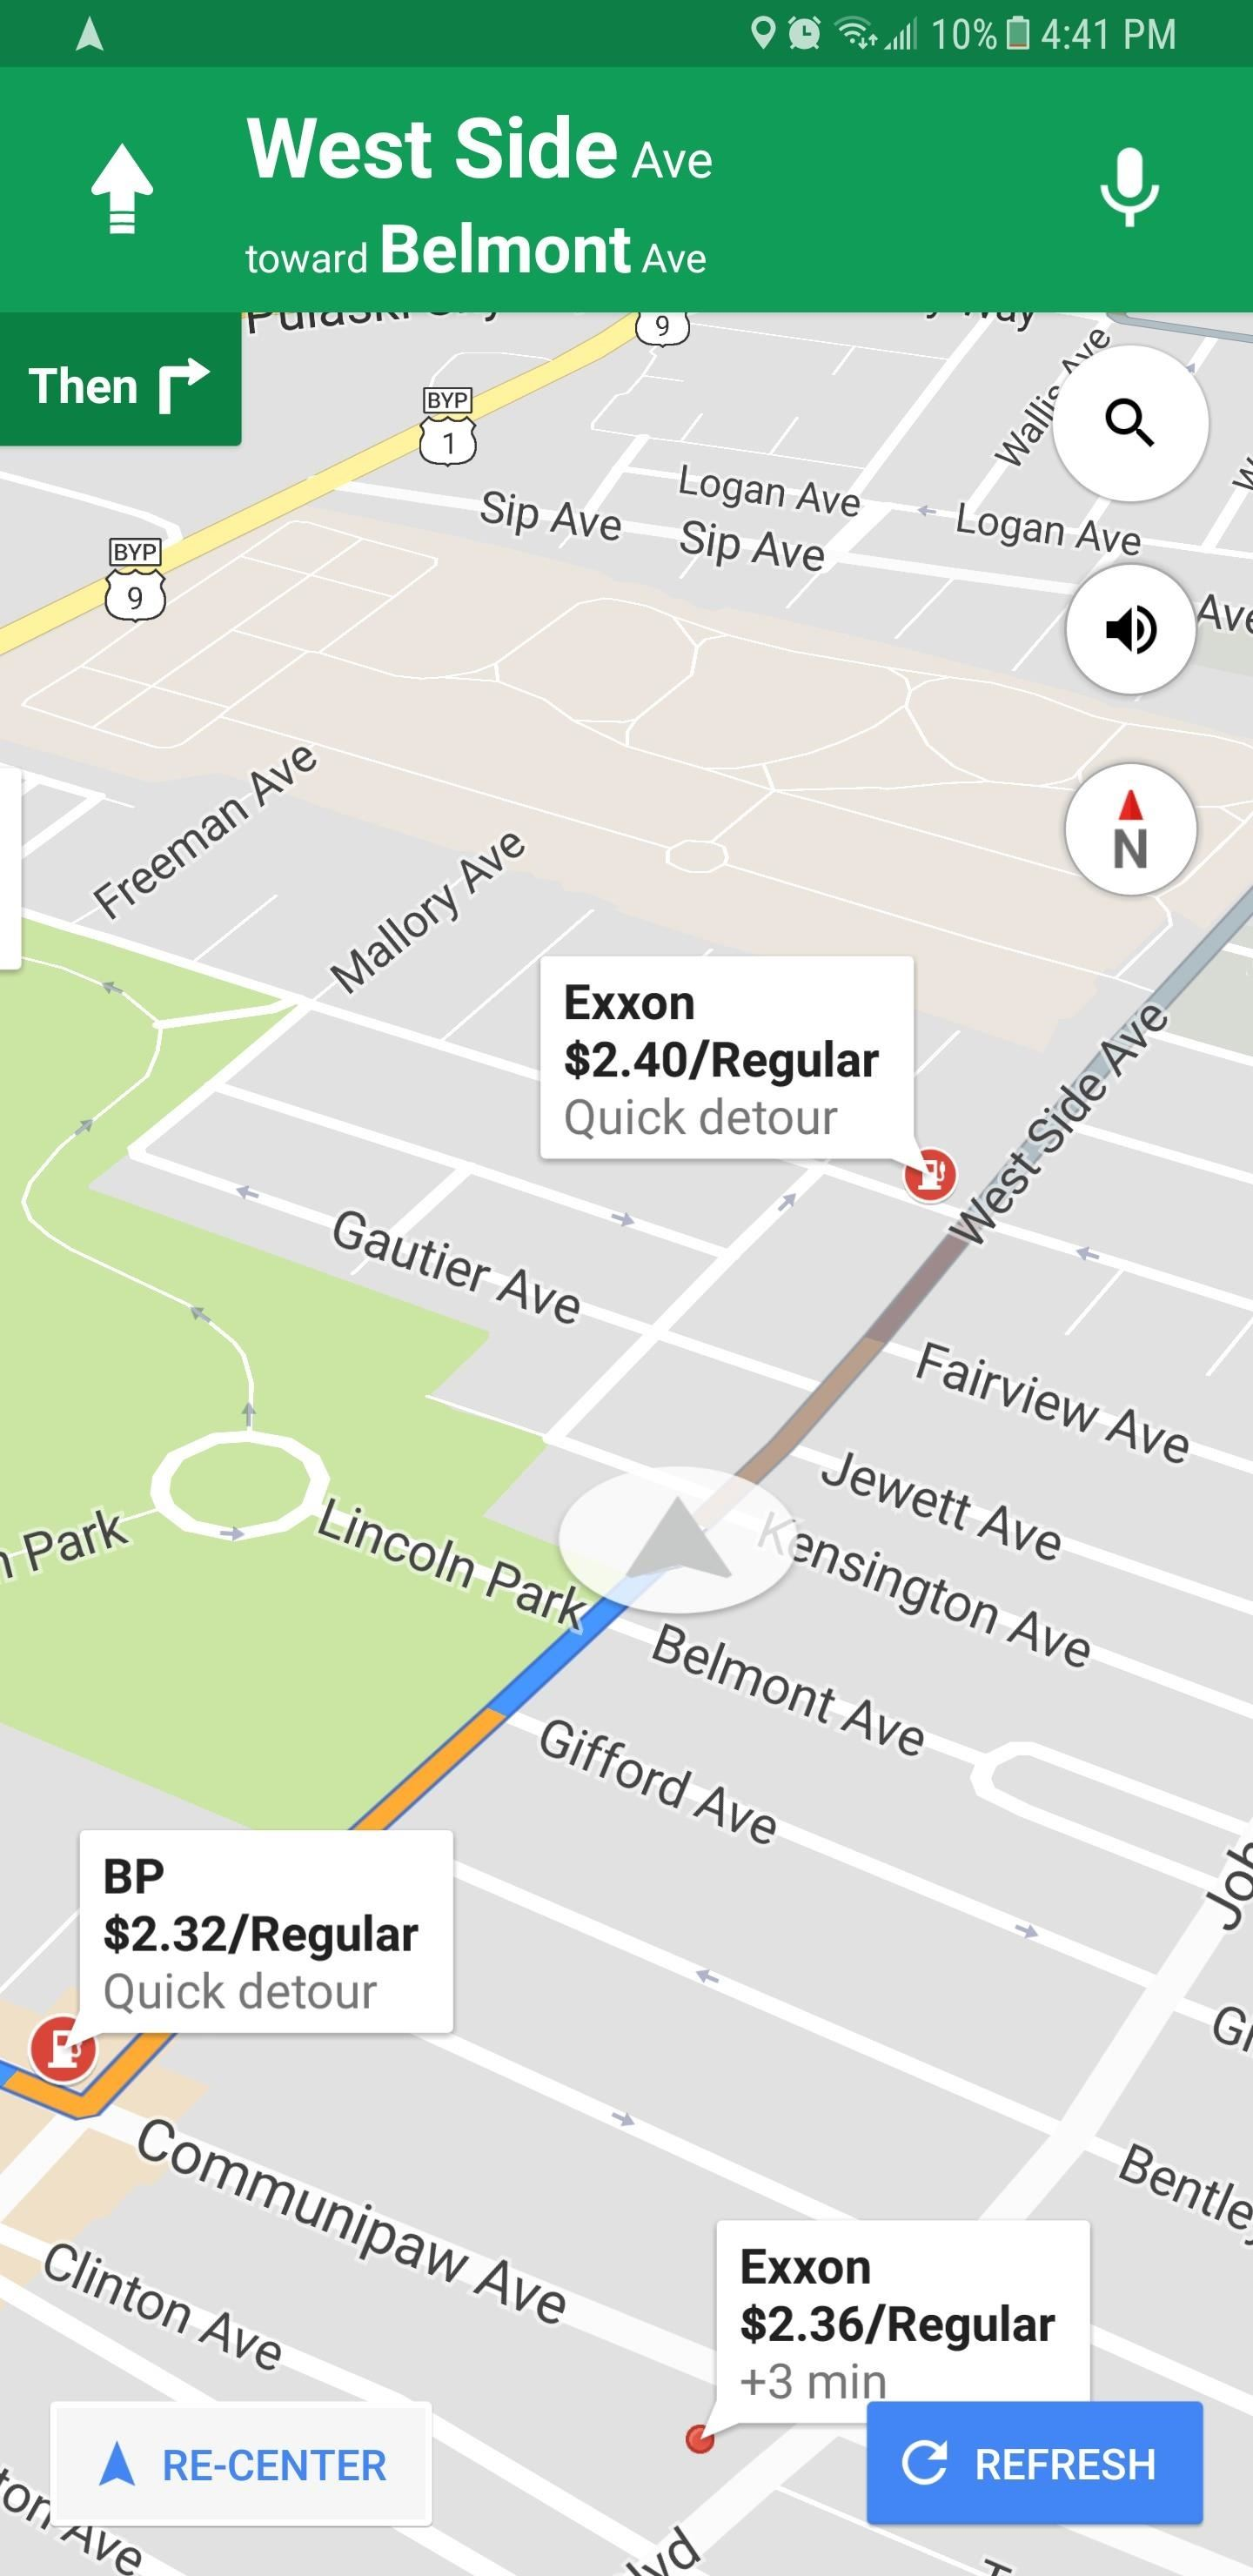 Google Maps 101: How to Add a Stop After You've Started Navigation